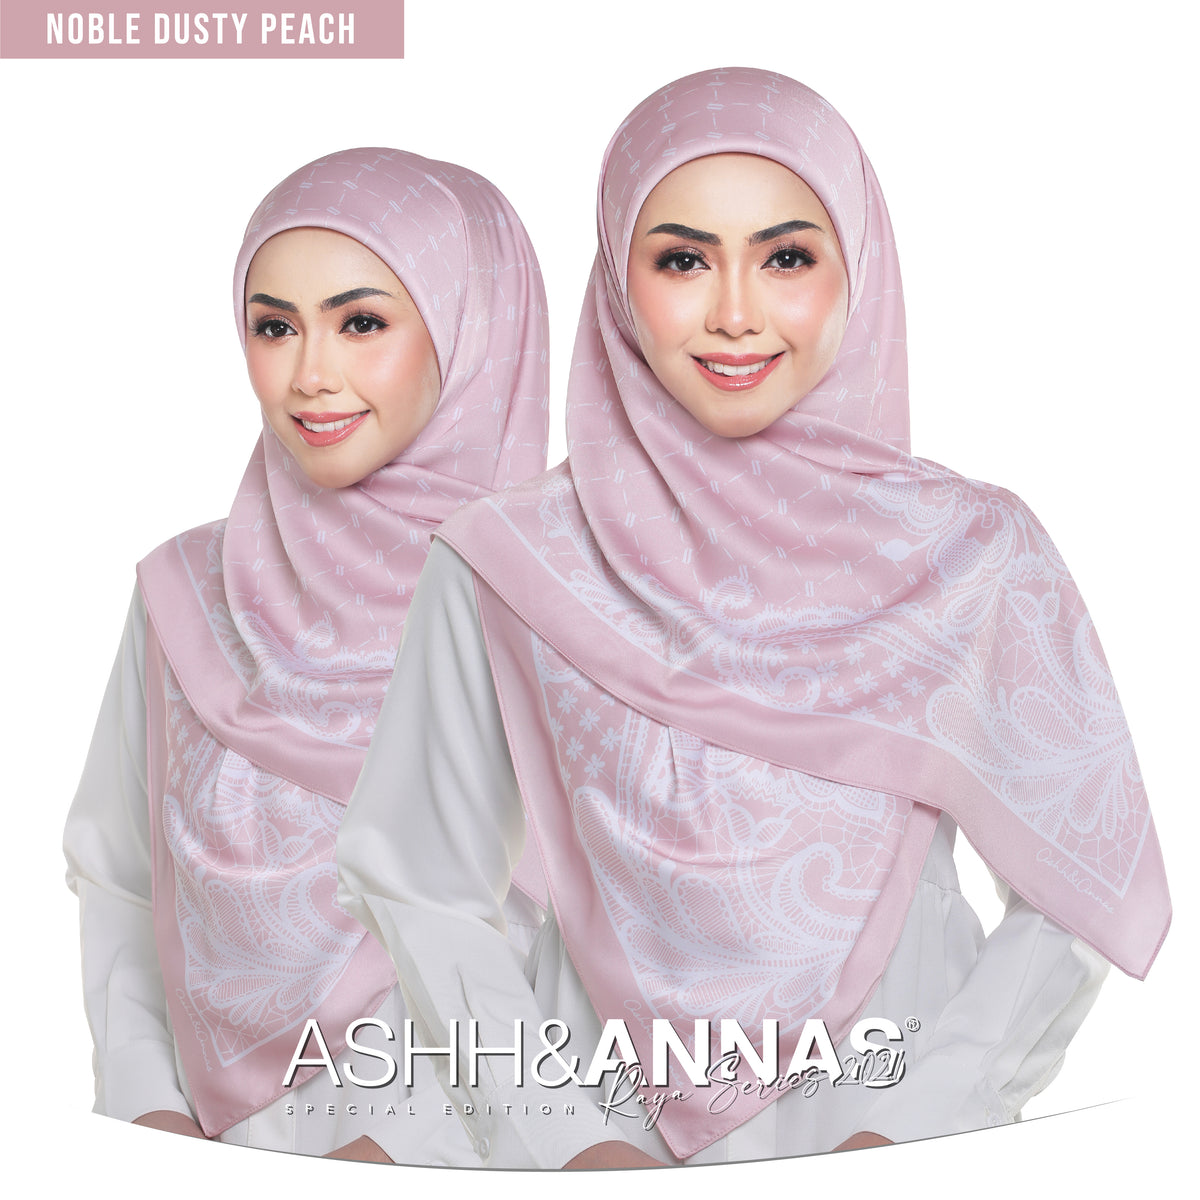 Ashh&Annas Raya 2021 in Noble Dusty Peach